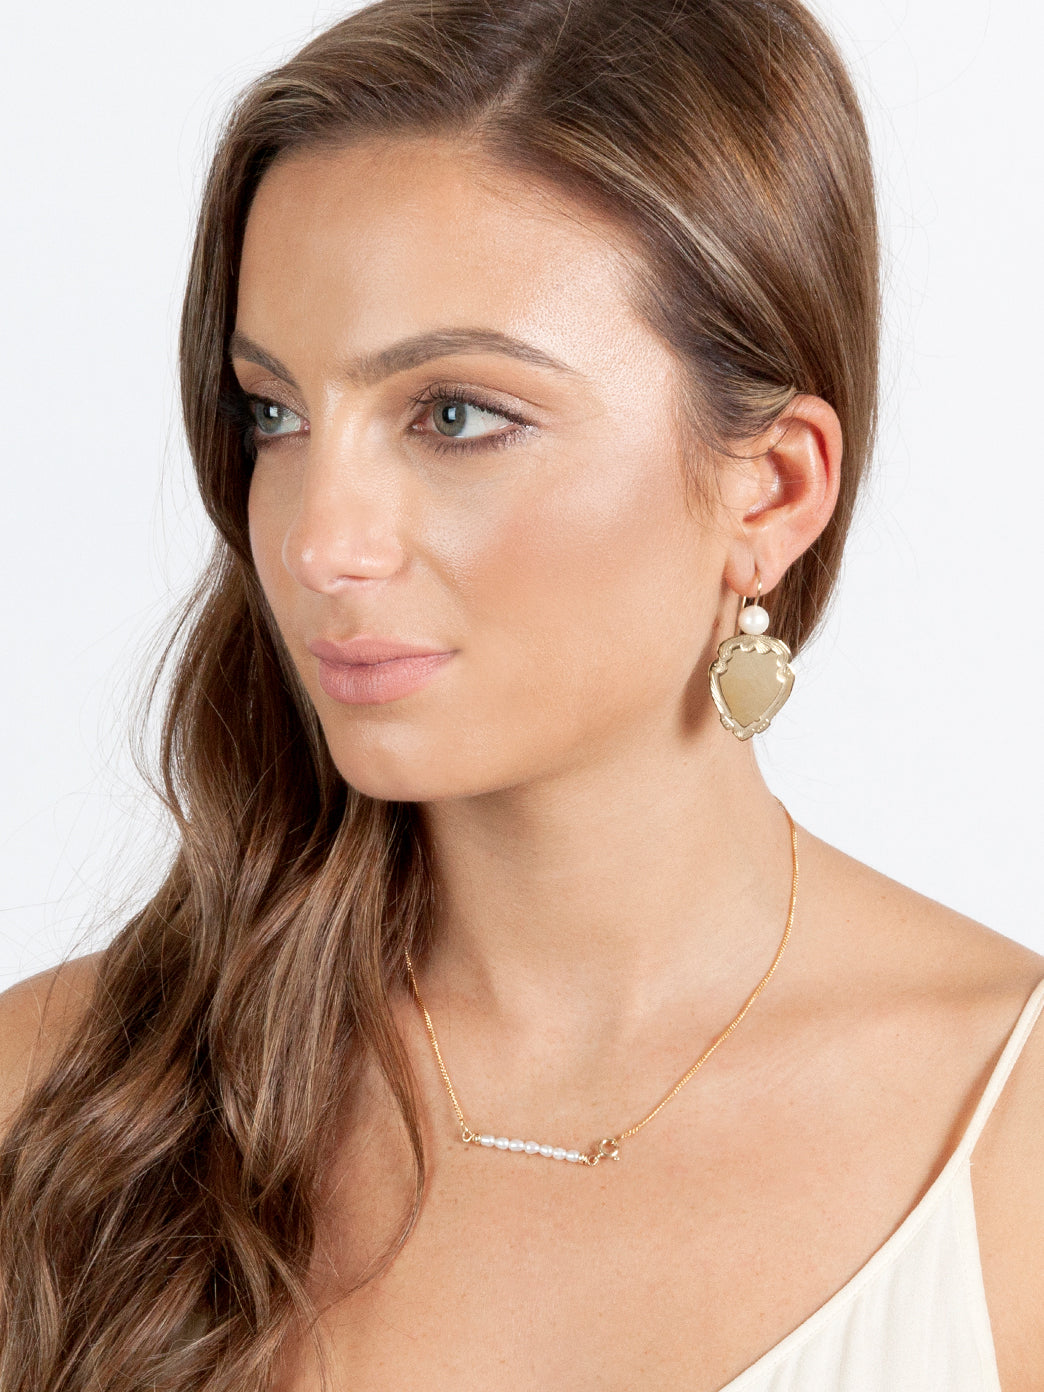 Fiorina Jewellery Gold Shield Earrings Model